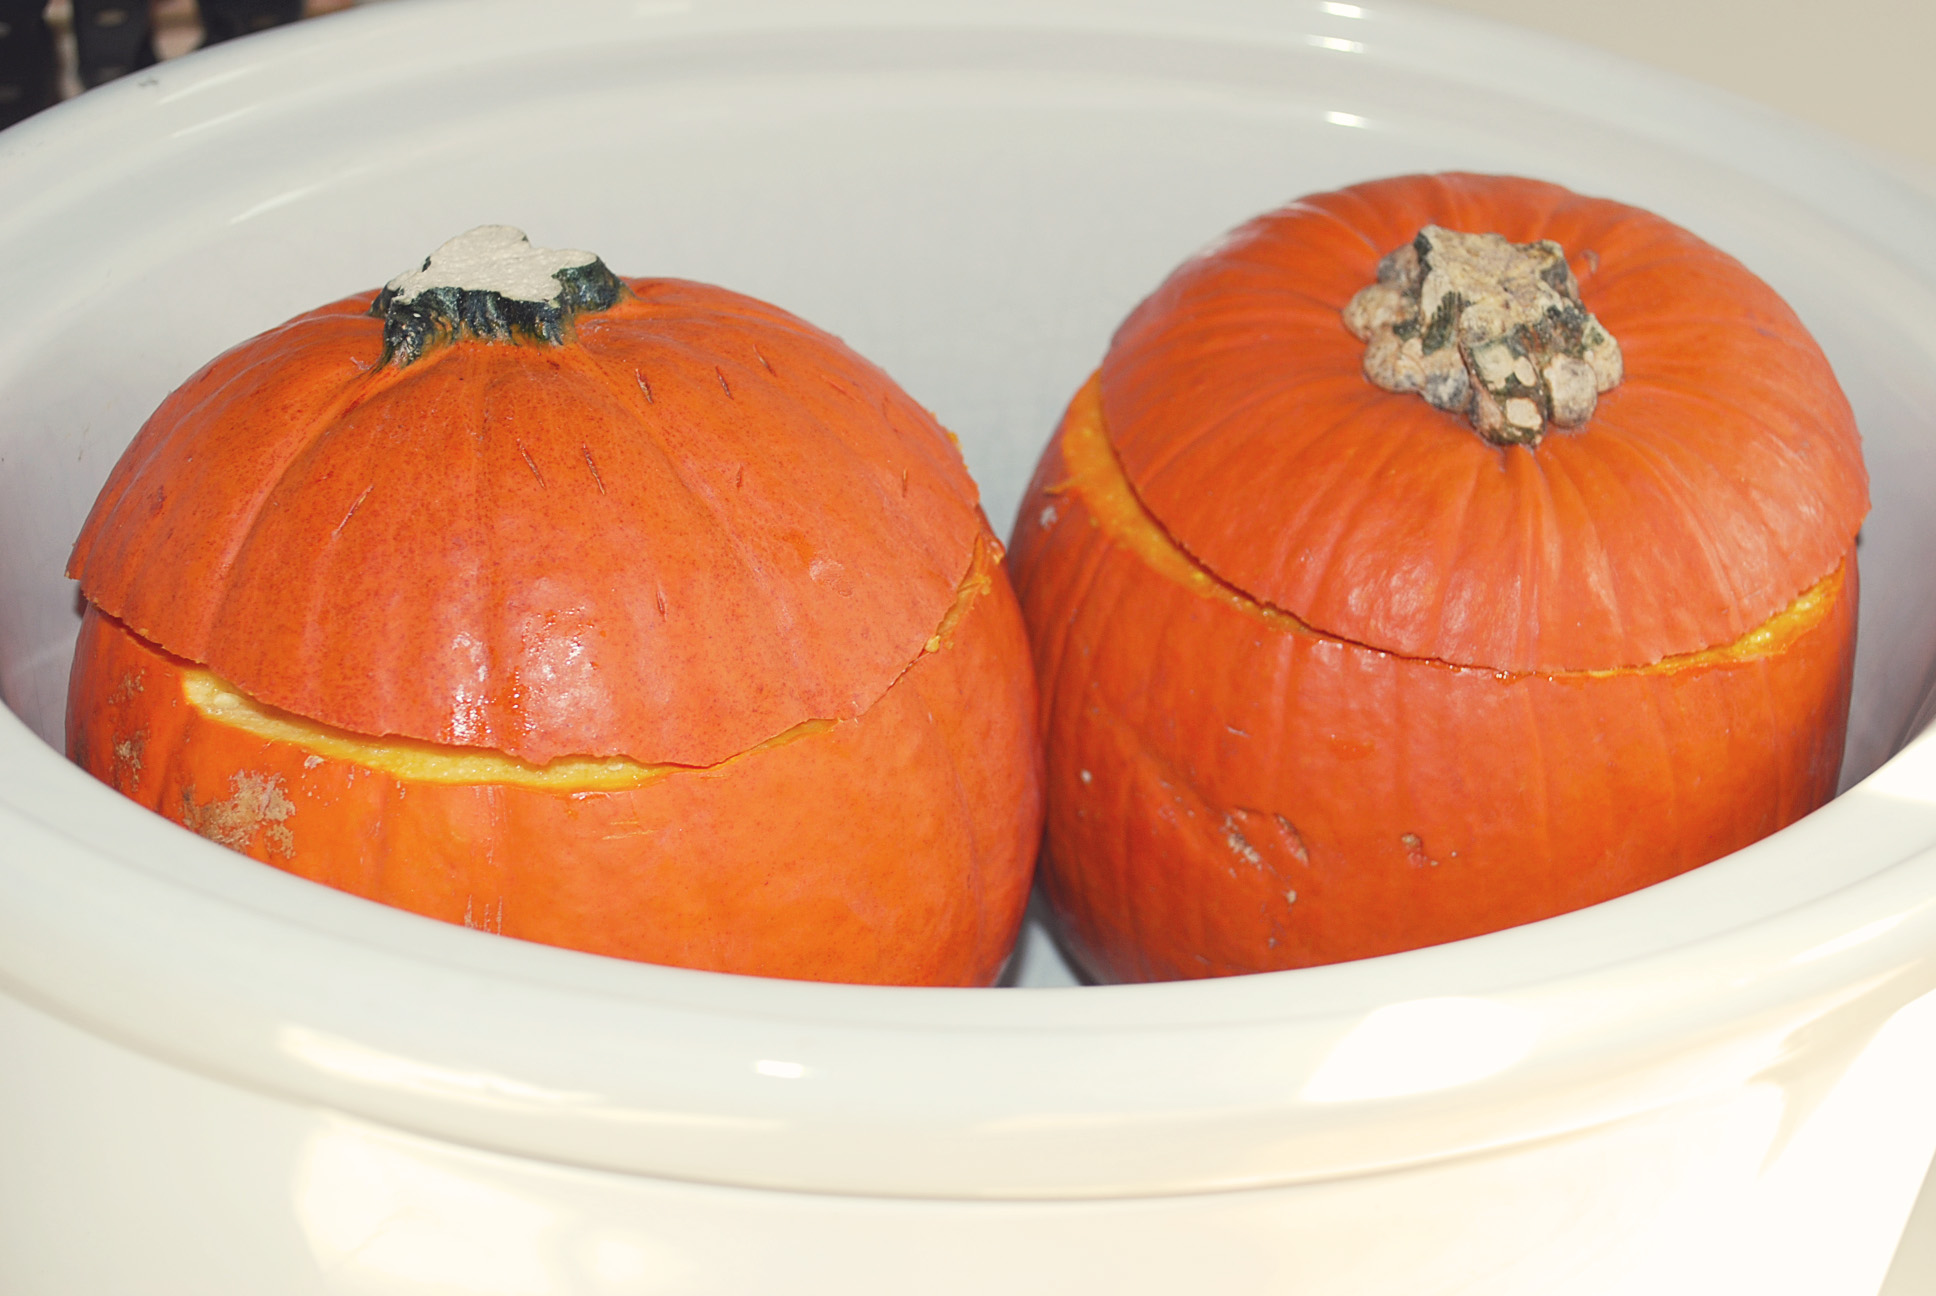 Slow Cooker Pumpkins for Puree